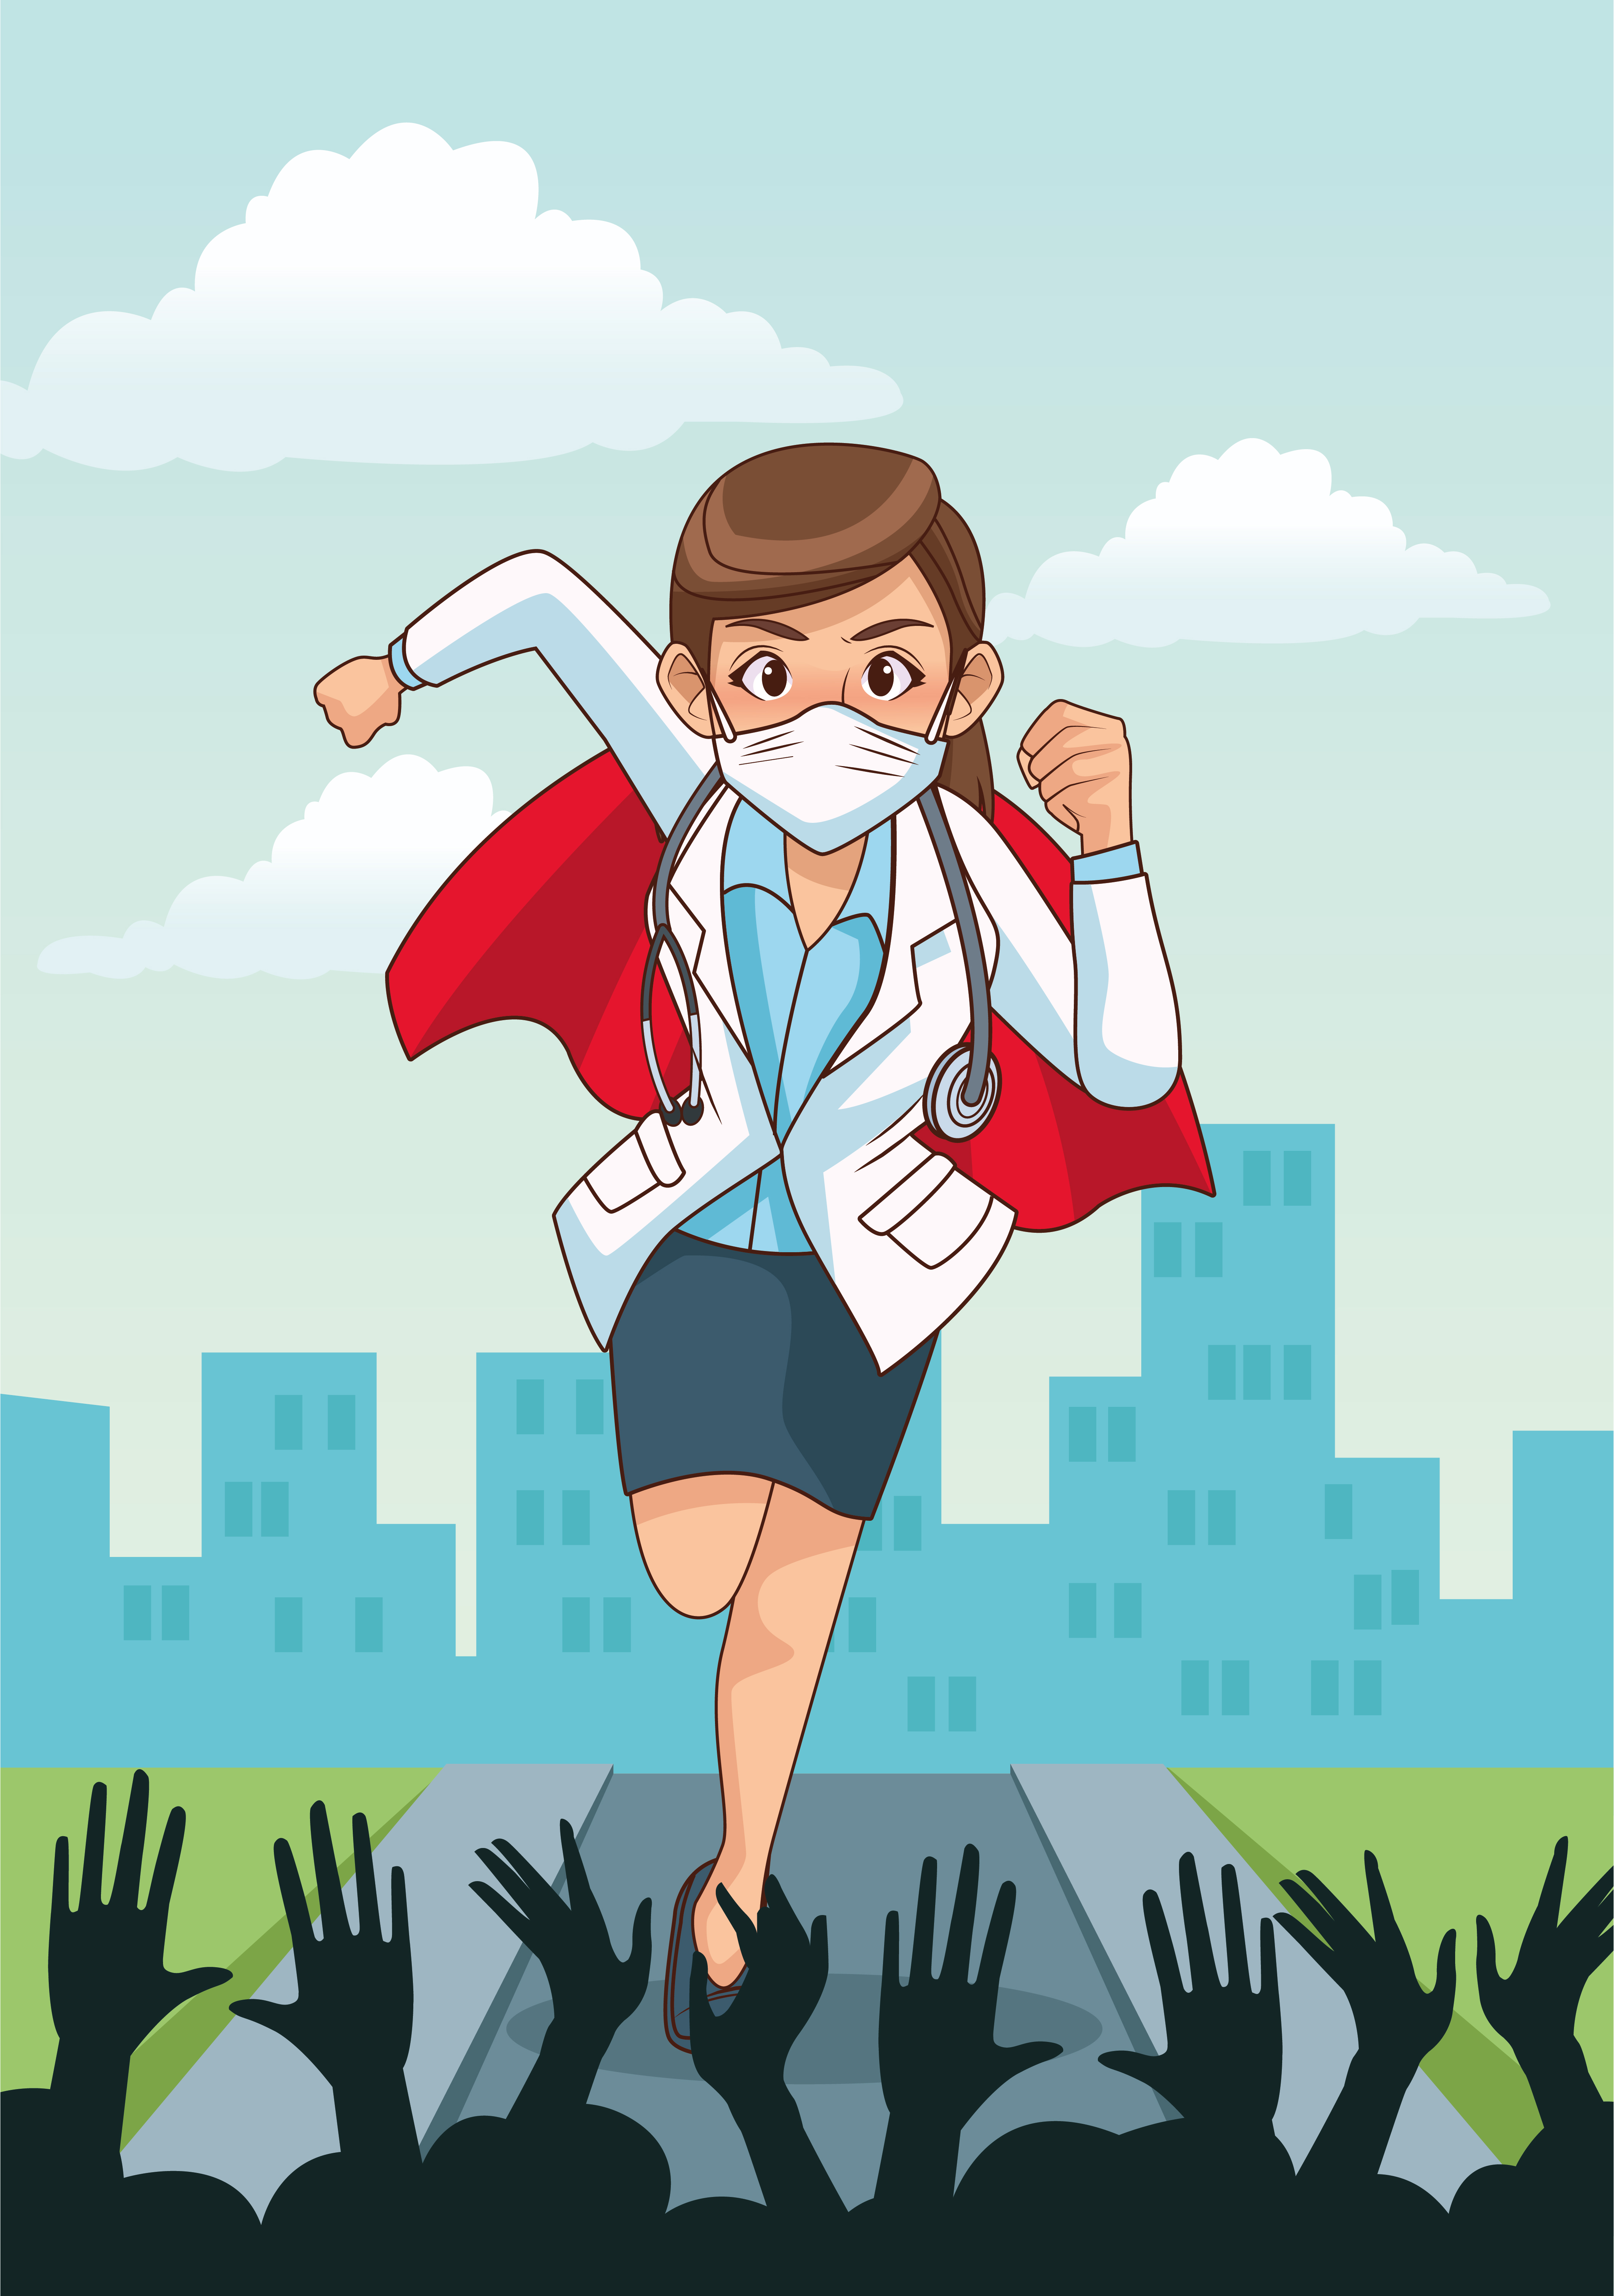 super doctora corriendo